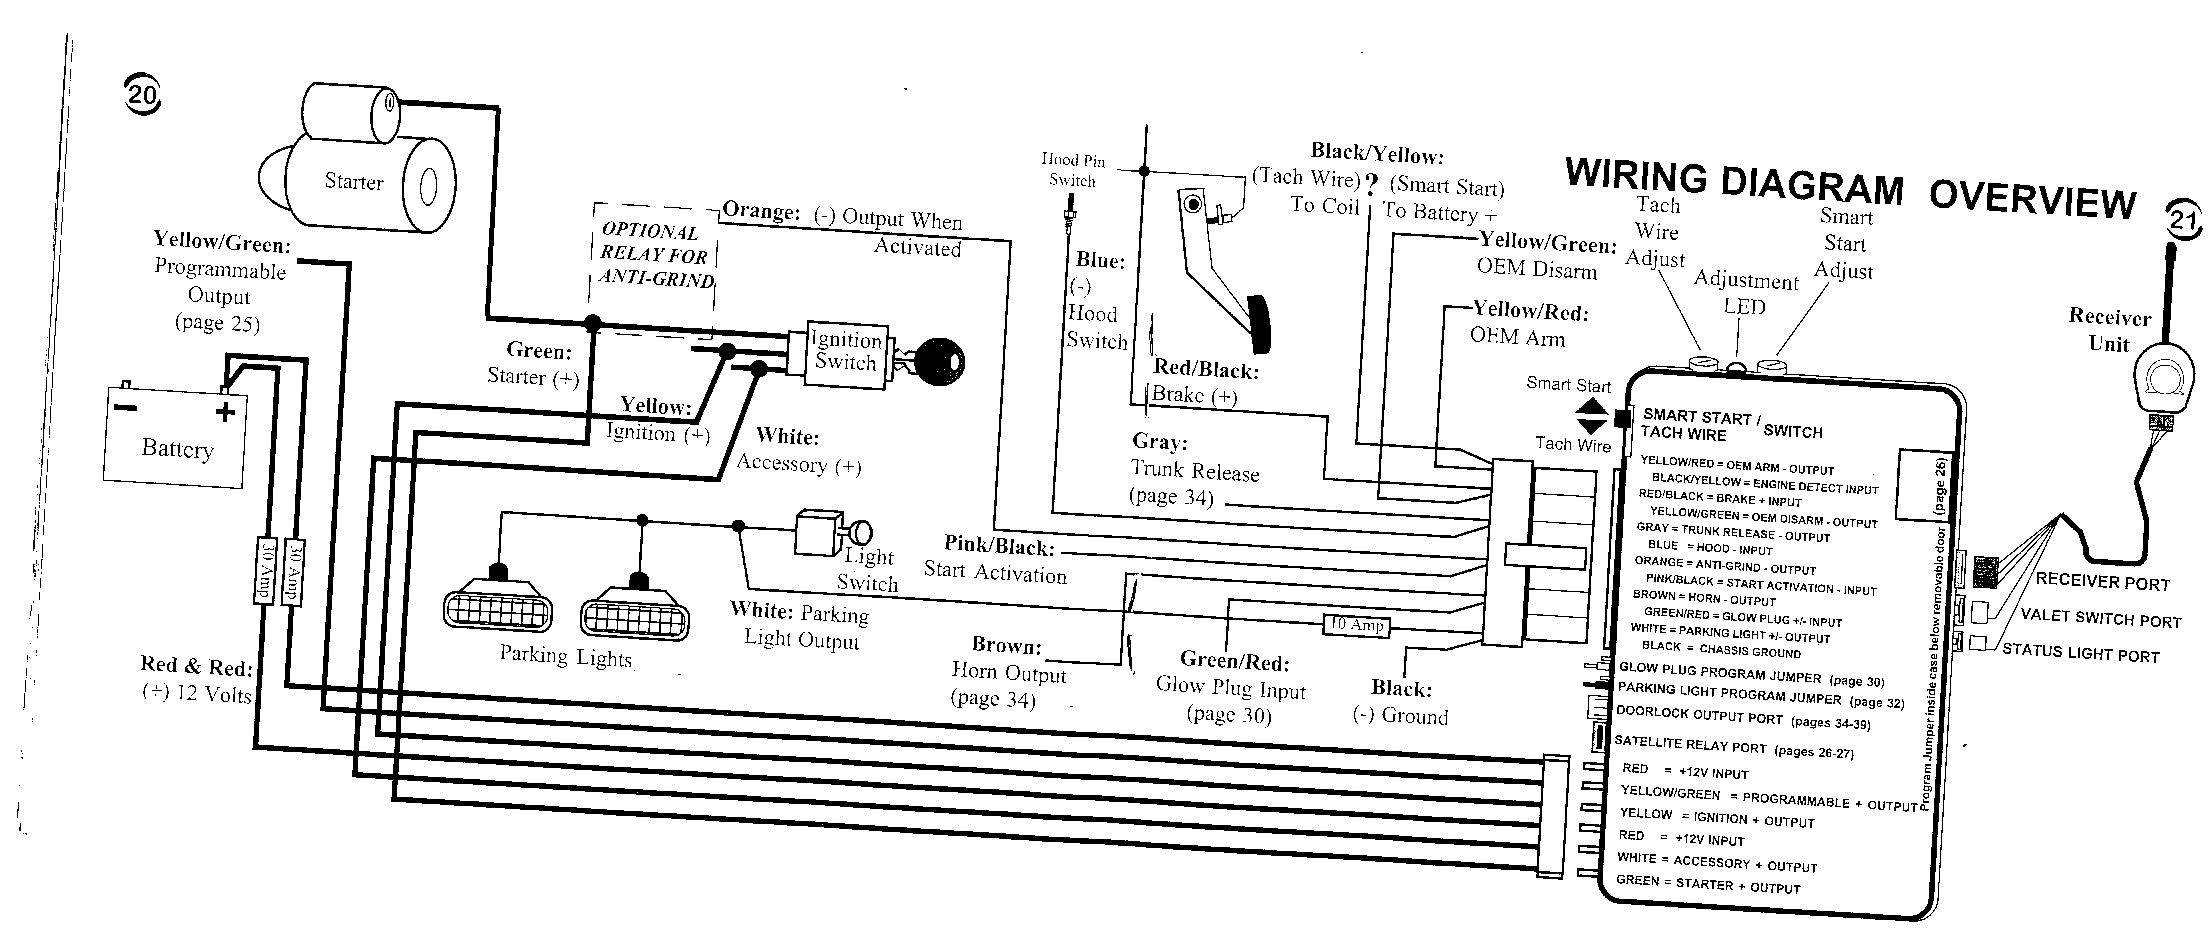 car alarm wiring diagrams free download fan speed switch diagram sample collection bulldog in club 36 volt with